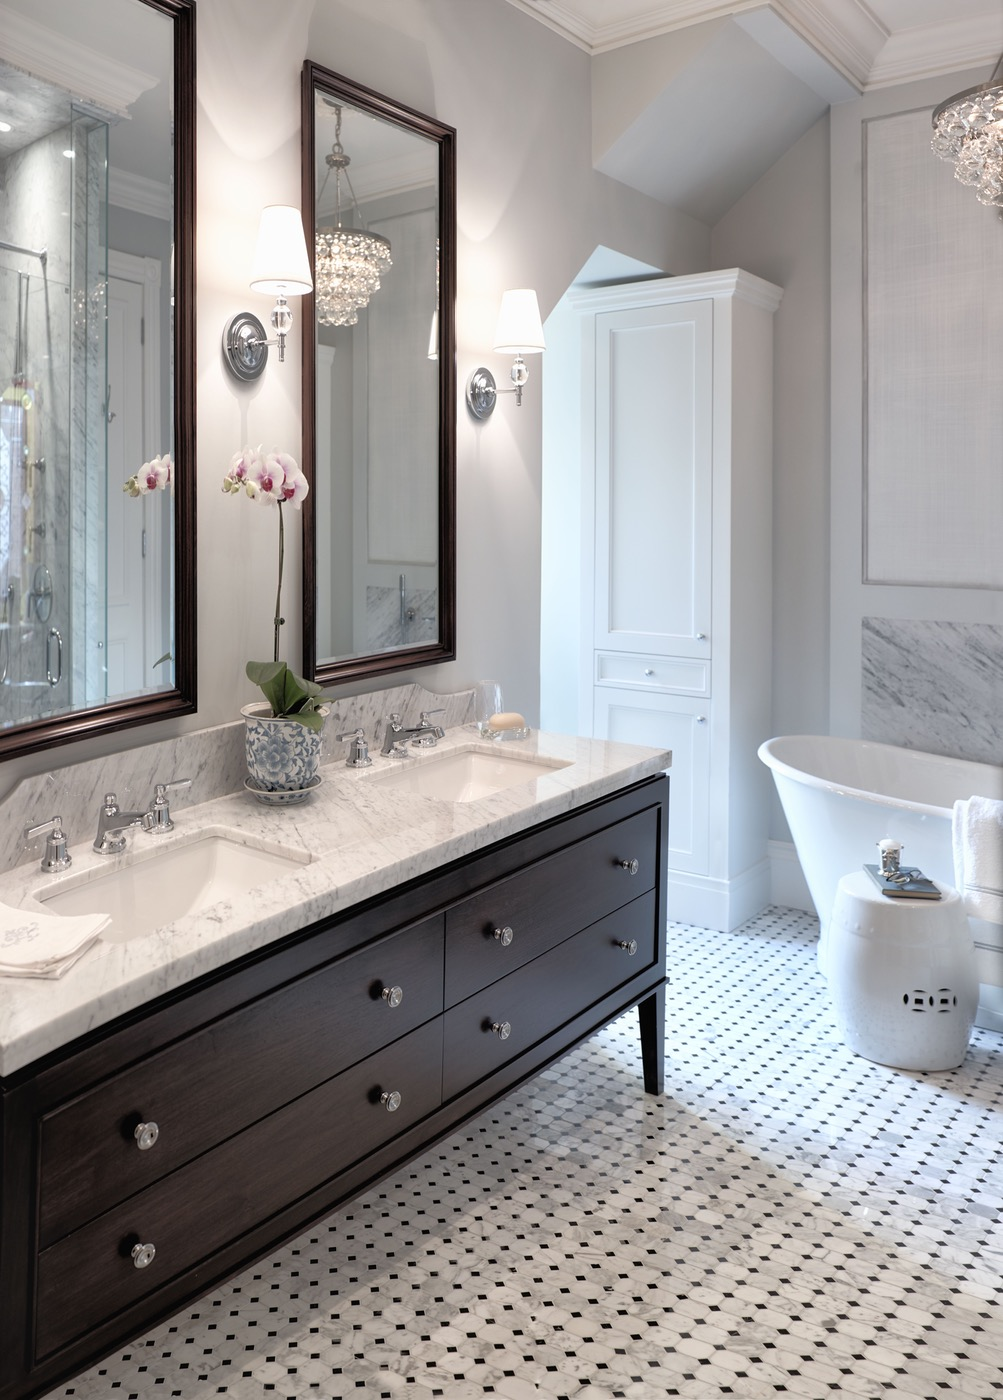 8 mind blowing small bathroom makeovers (before and after photos